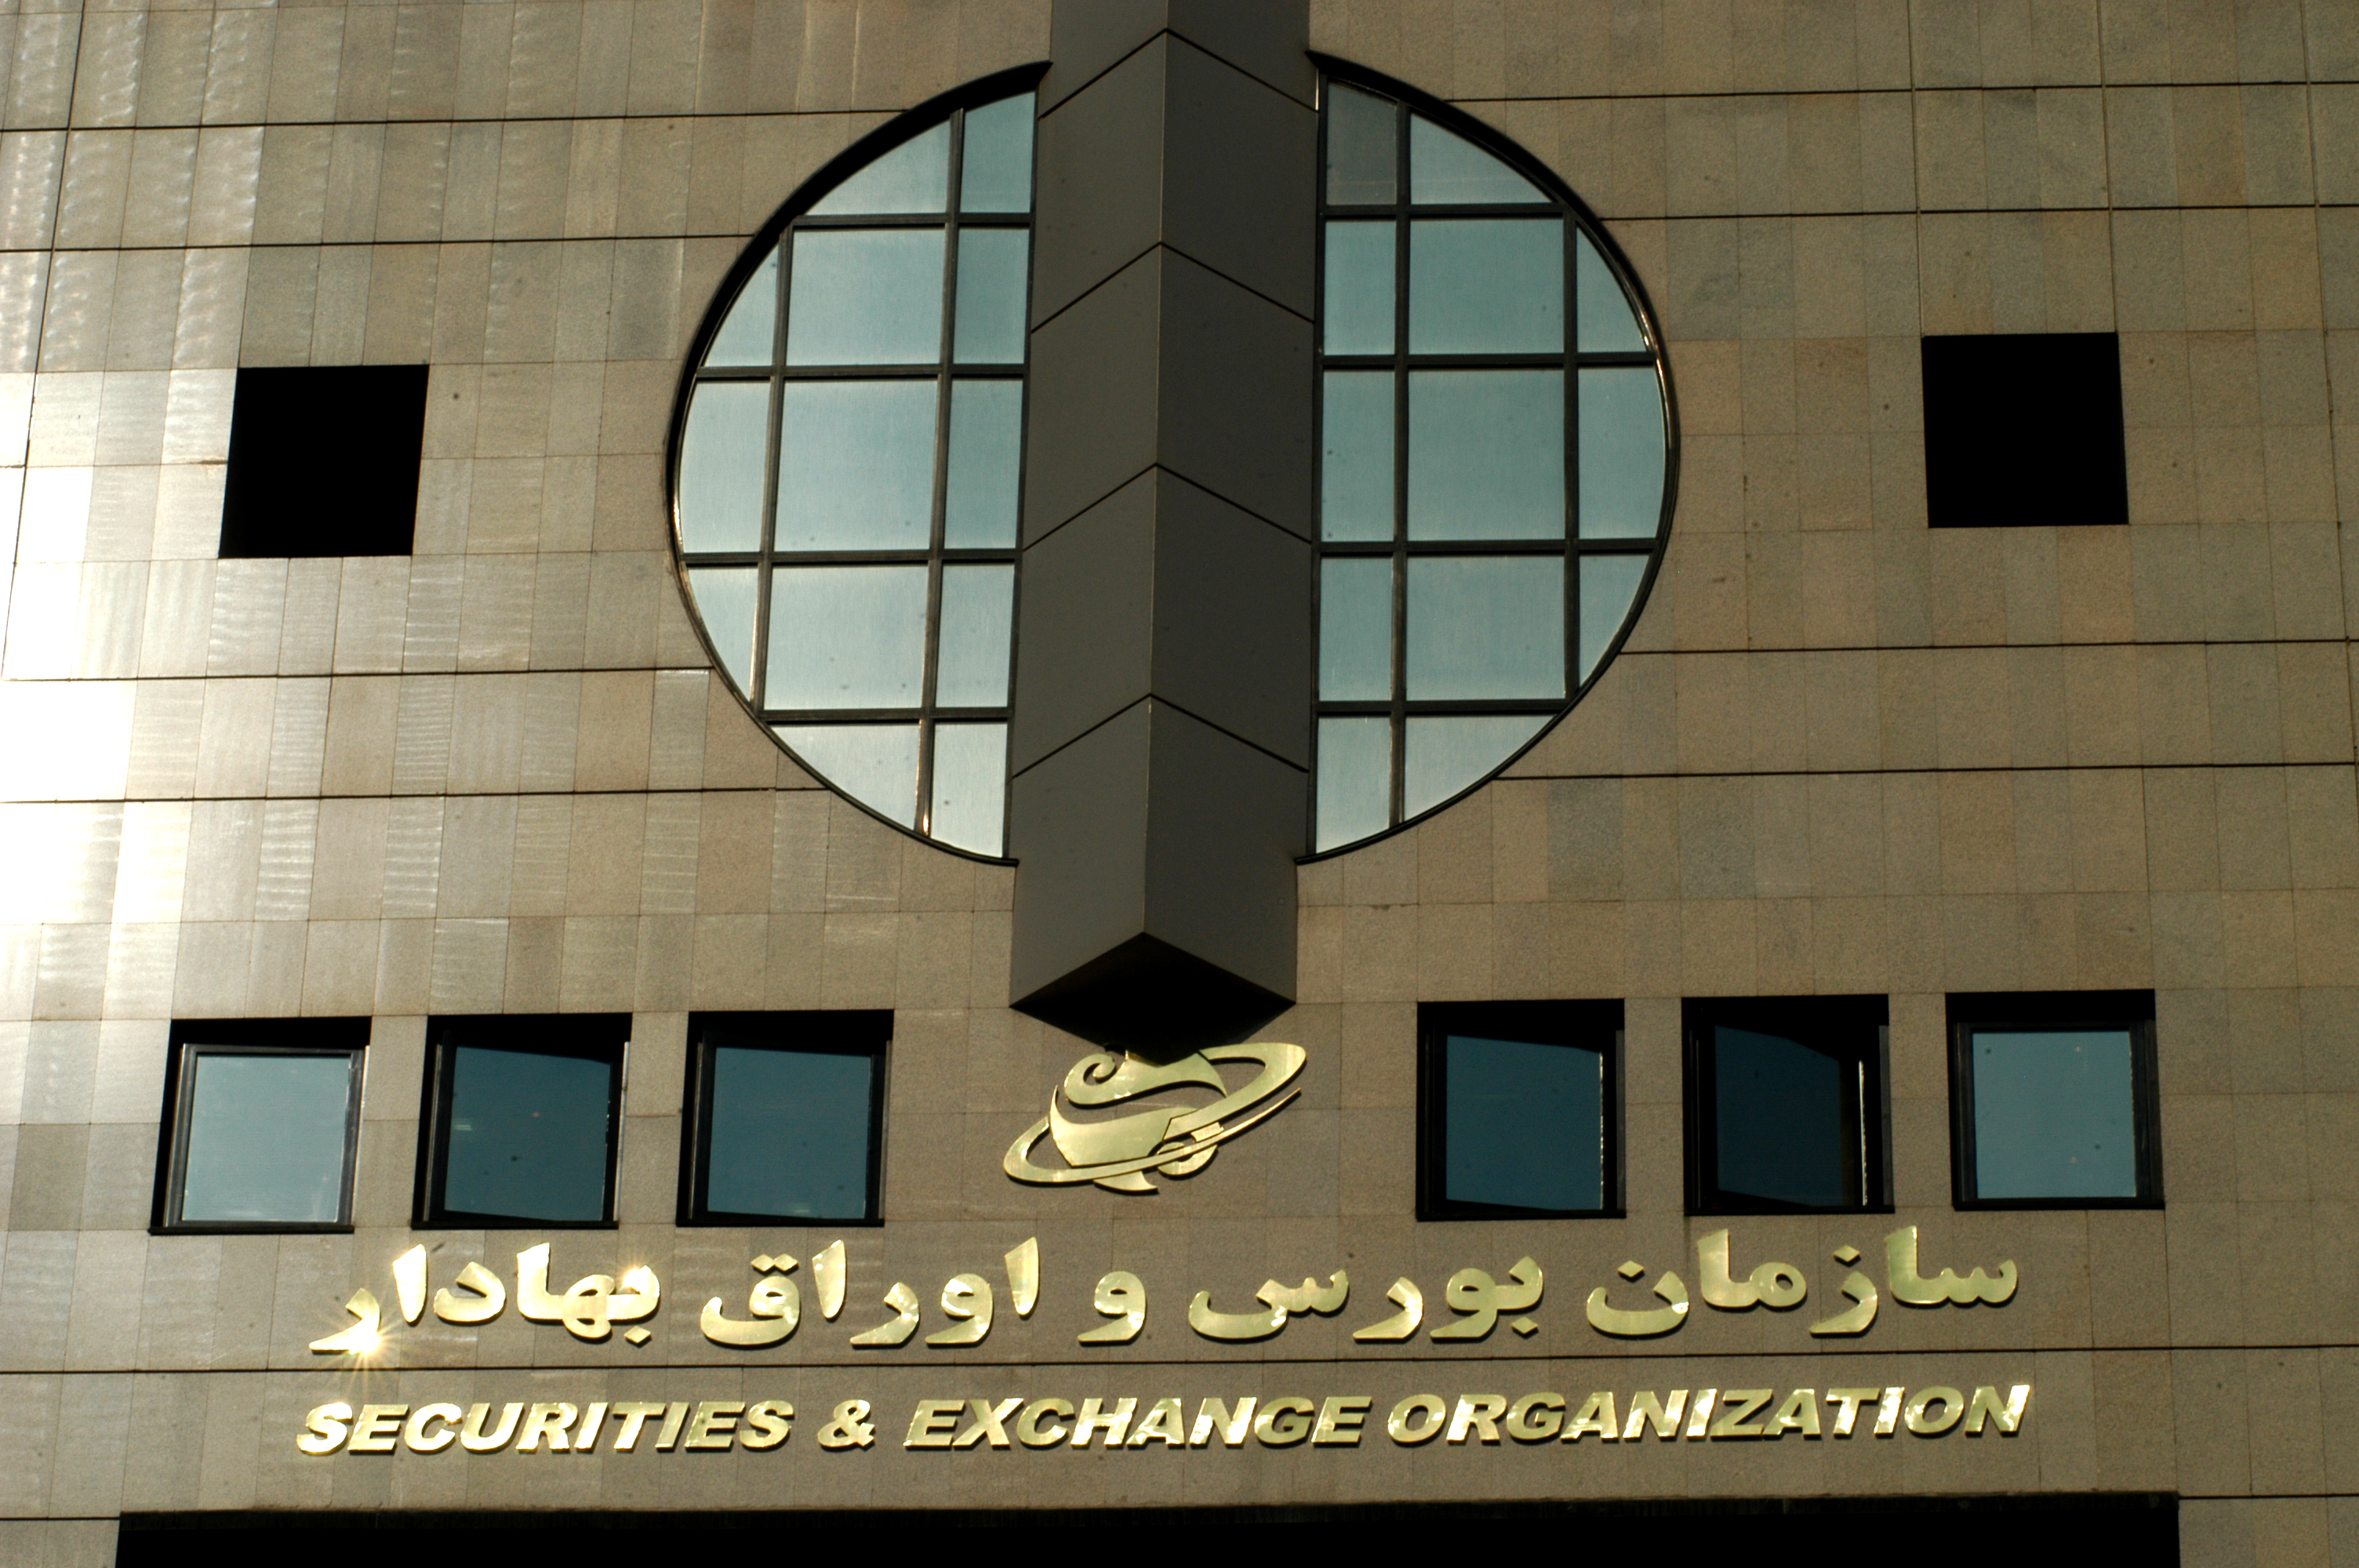 The Presence of the Securities and Exchange Organization In the Exhibition is Excluded